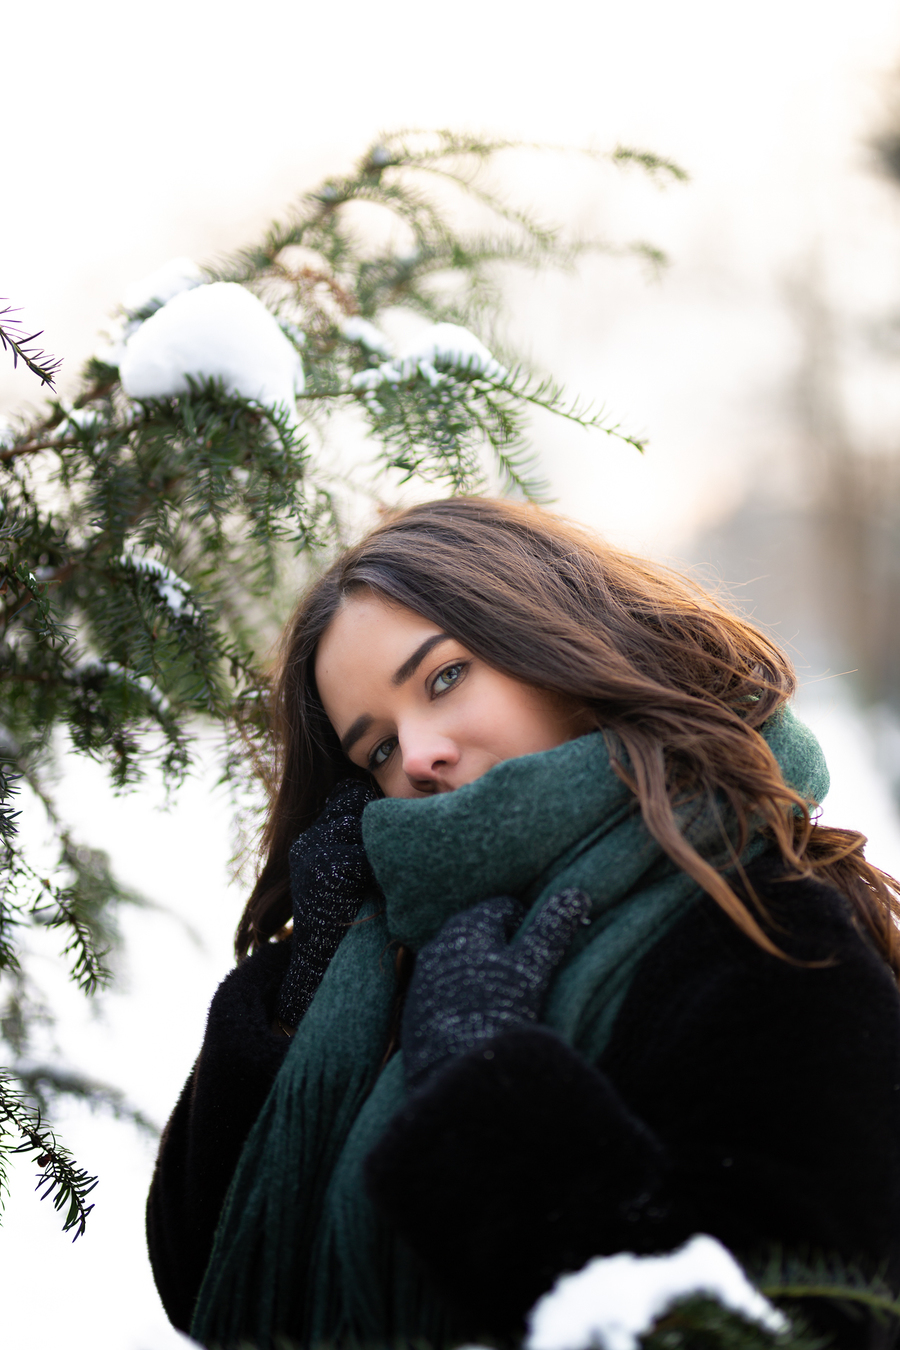 Winter portrait  / Photography by SkibinskiPhotography / Uploaded 9th May 2021 @ 06:29 PM